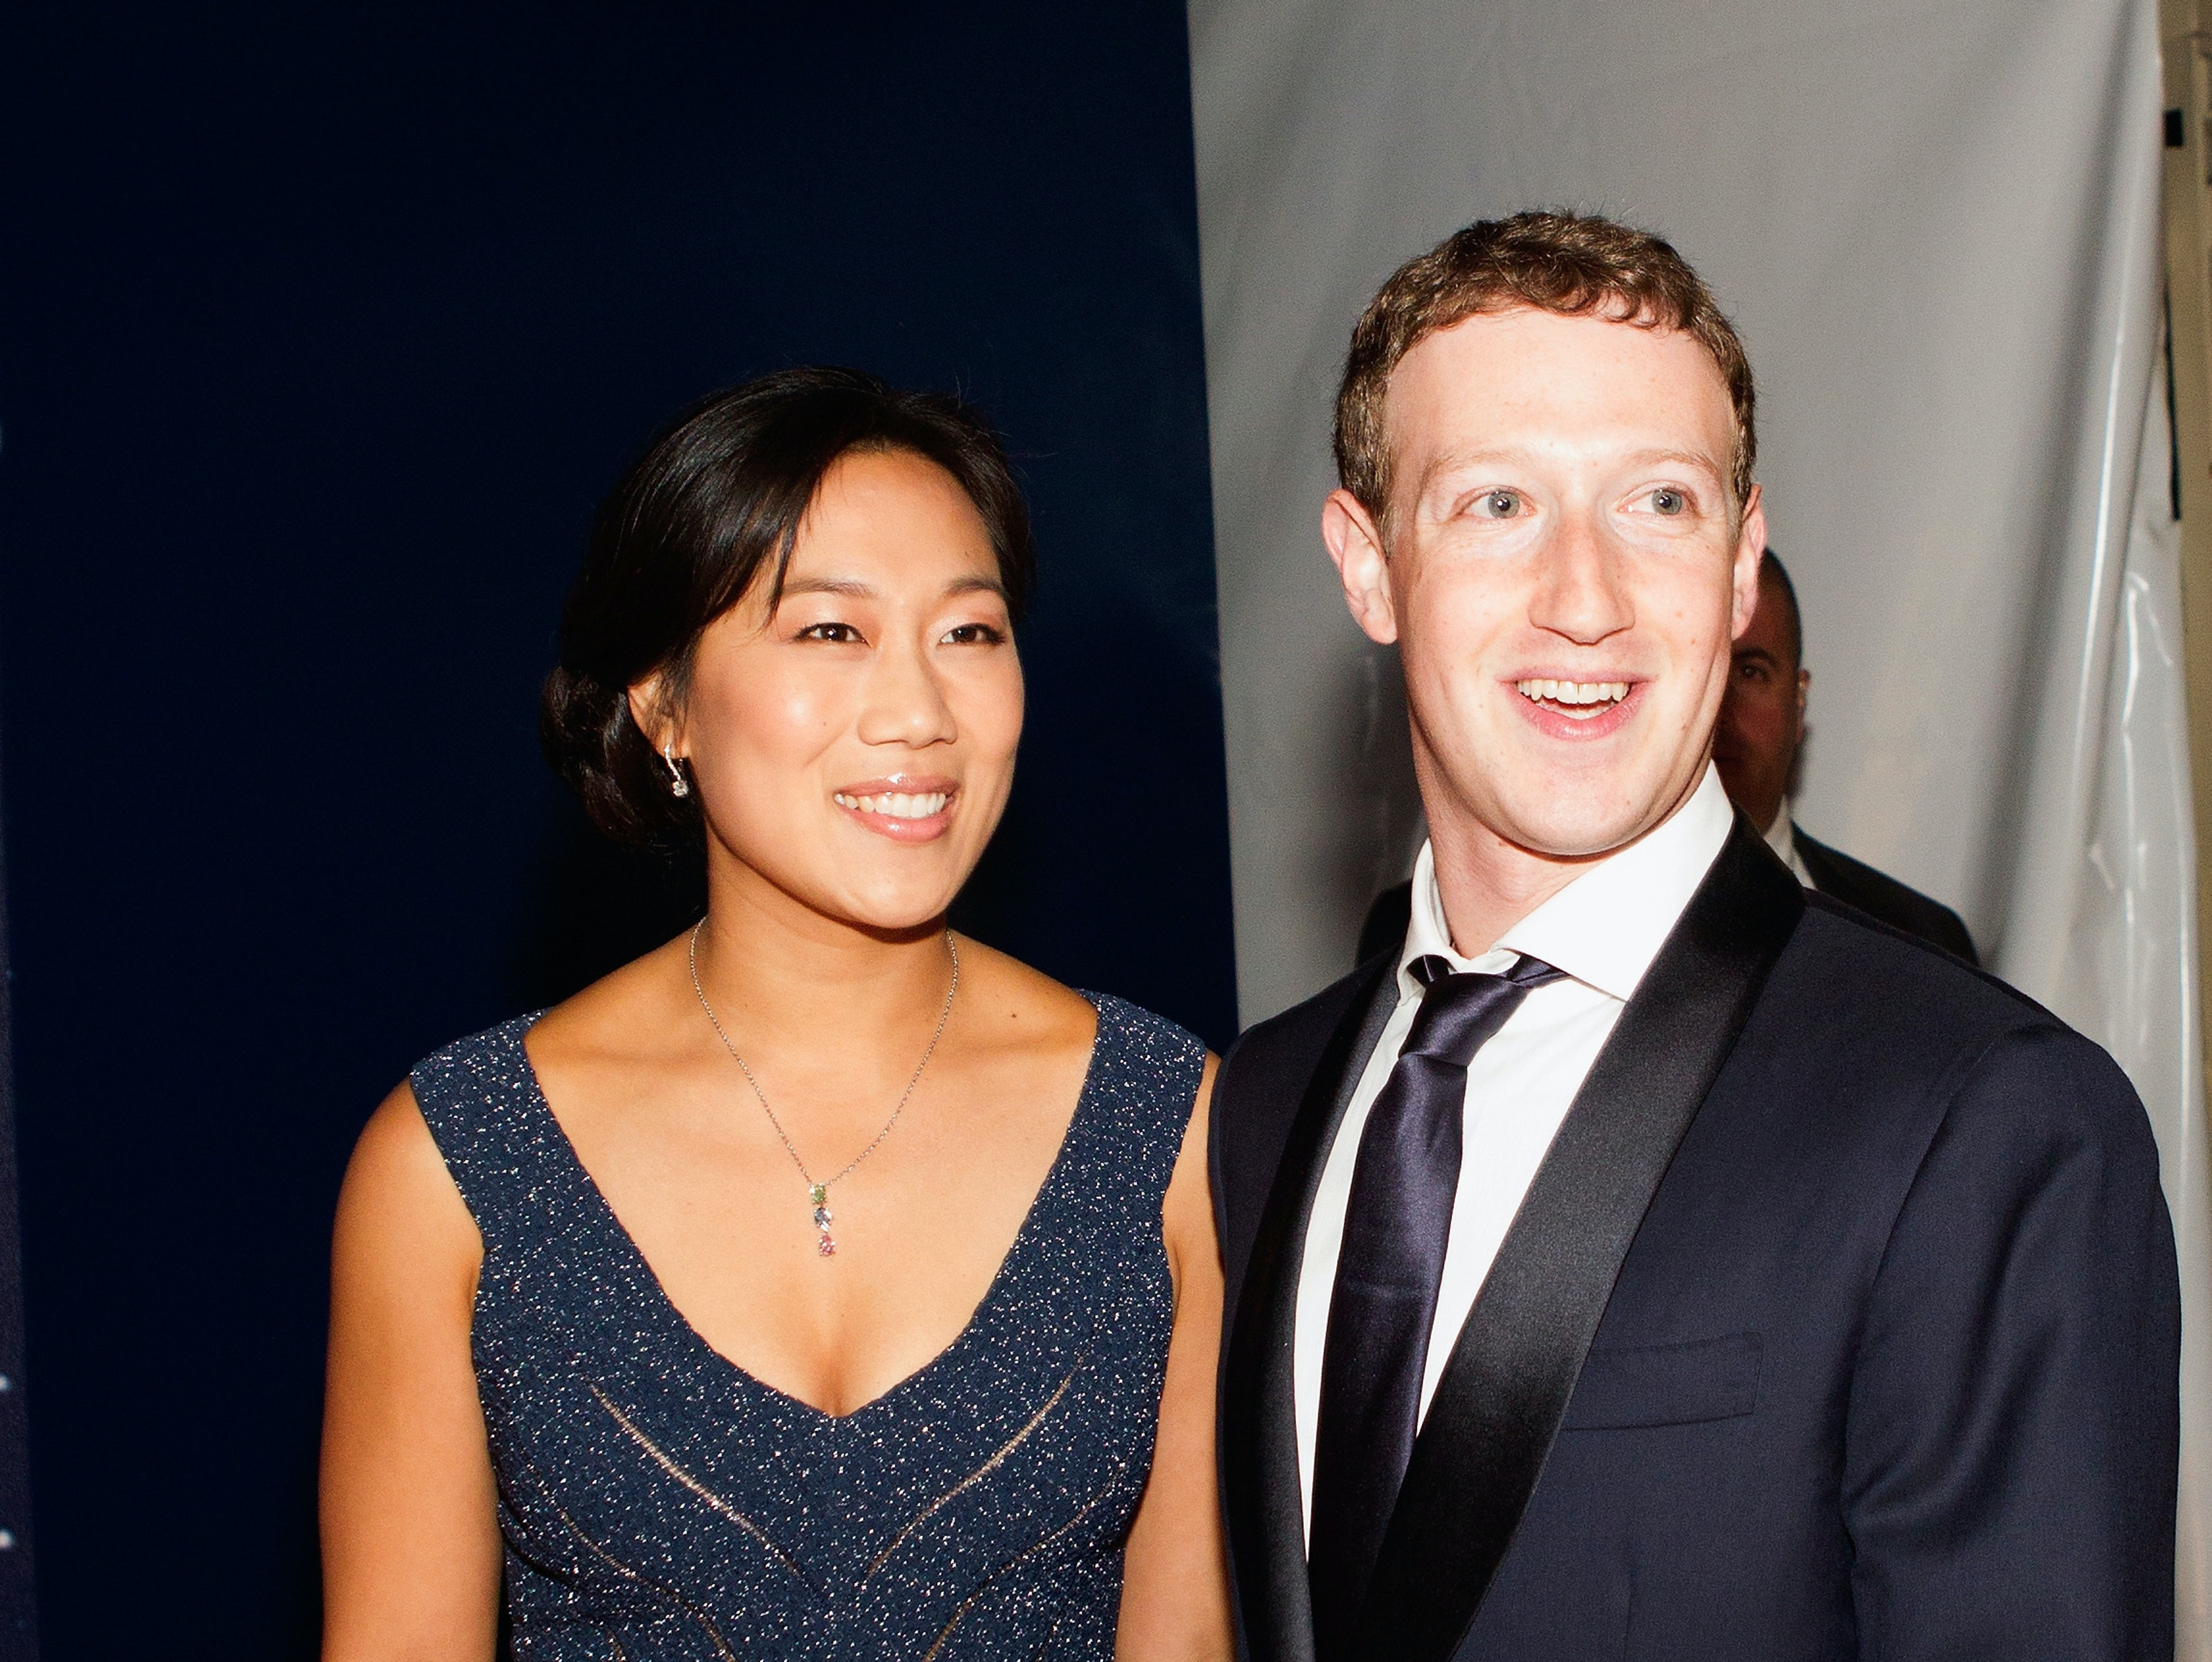 MOUNTAIN VIEW, CA - NOVEMBER 09:  Breakthrough Prize Co-Founders Priscilla Chan and Mark Zuckerberg attend. the Breakthrough Prize Awards Ceremony Hosted By Seth MacFarlane at NASA Ames Research Center on November 9, 2014 in Mountain View, California.  (Photo by Kimberly White/Getty Images for Breakthrough Prize)